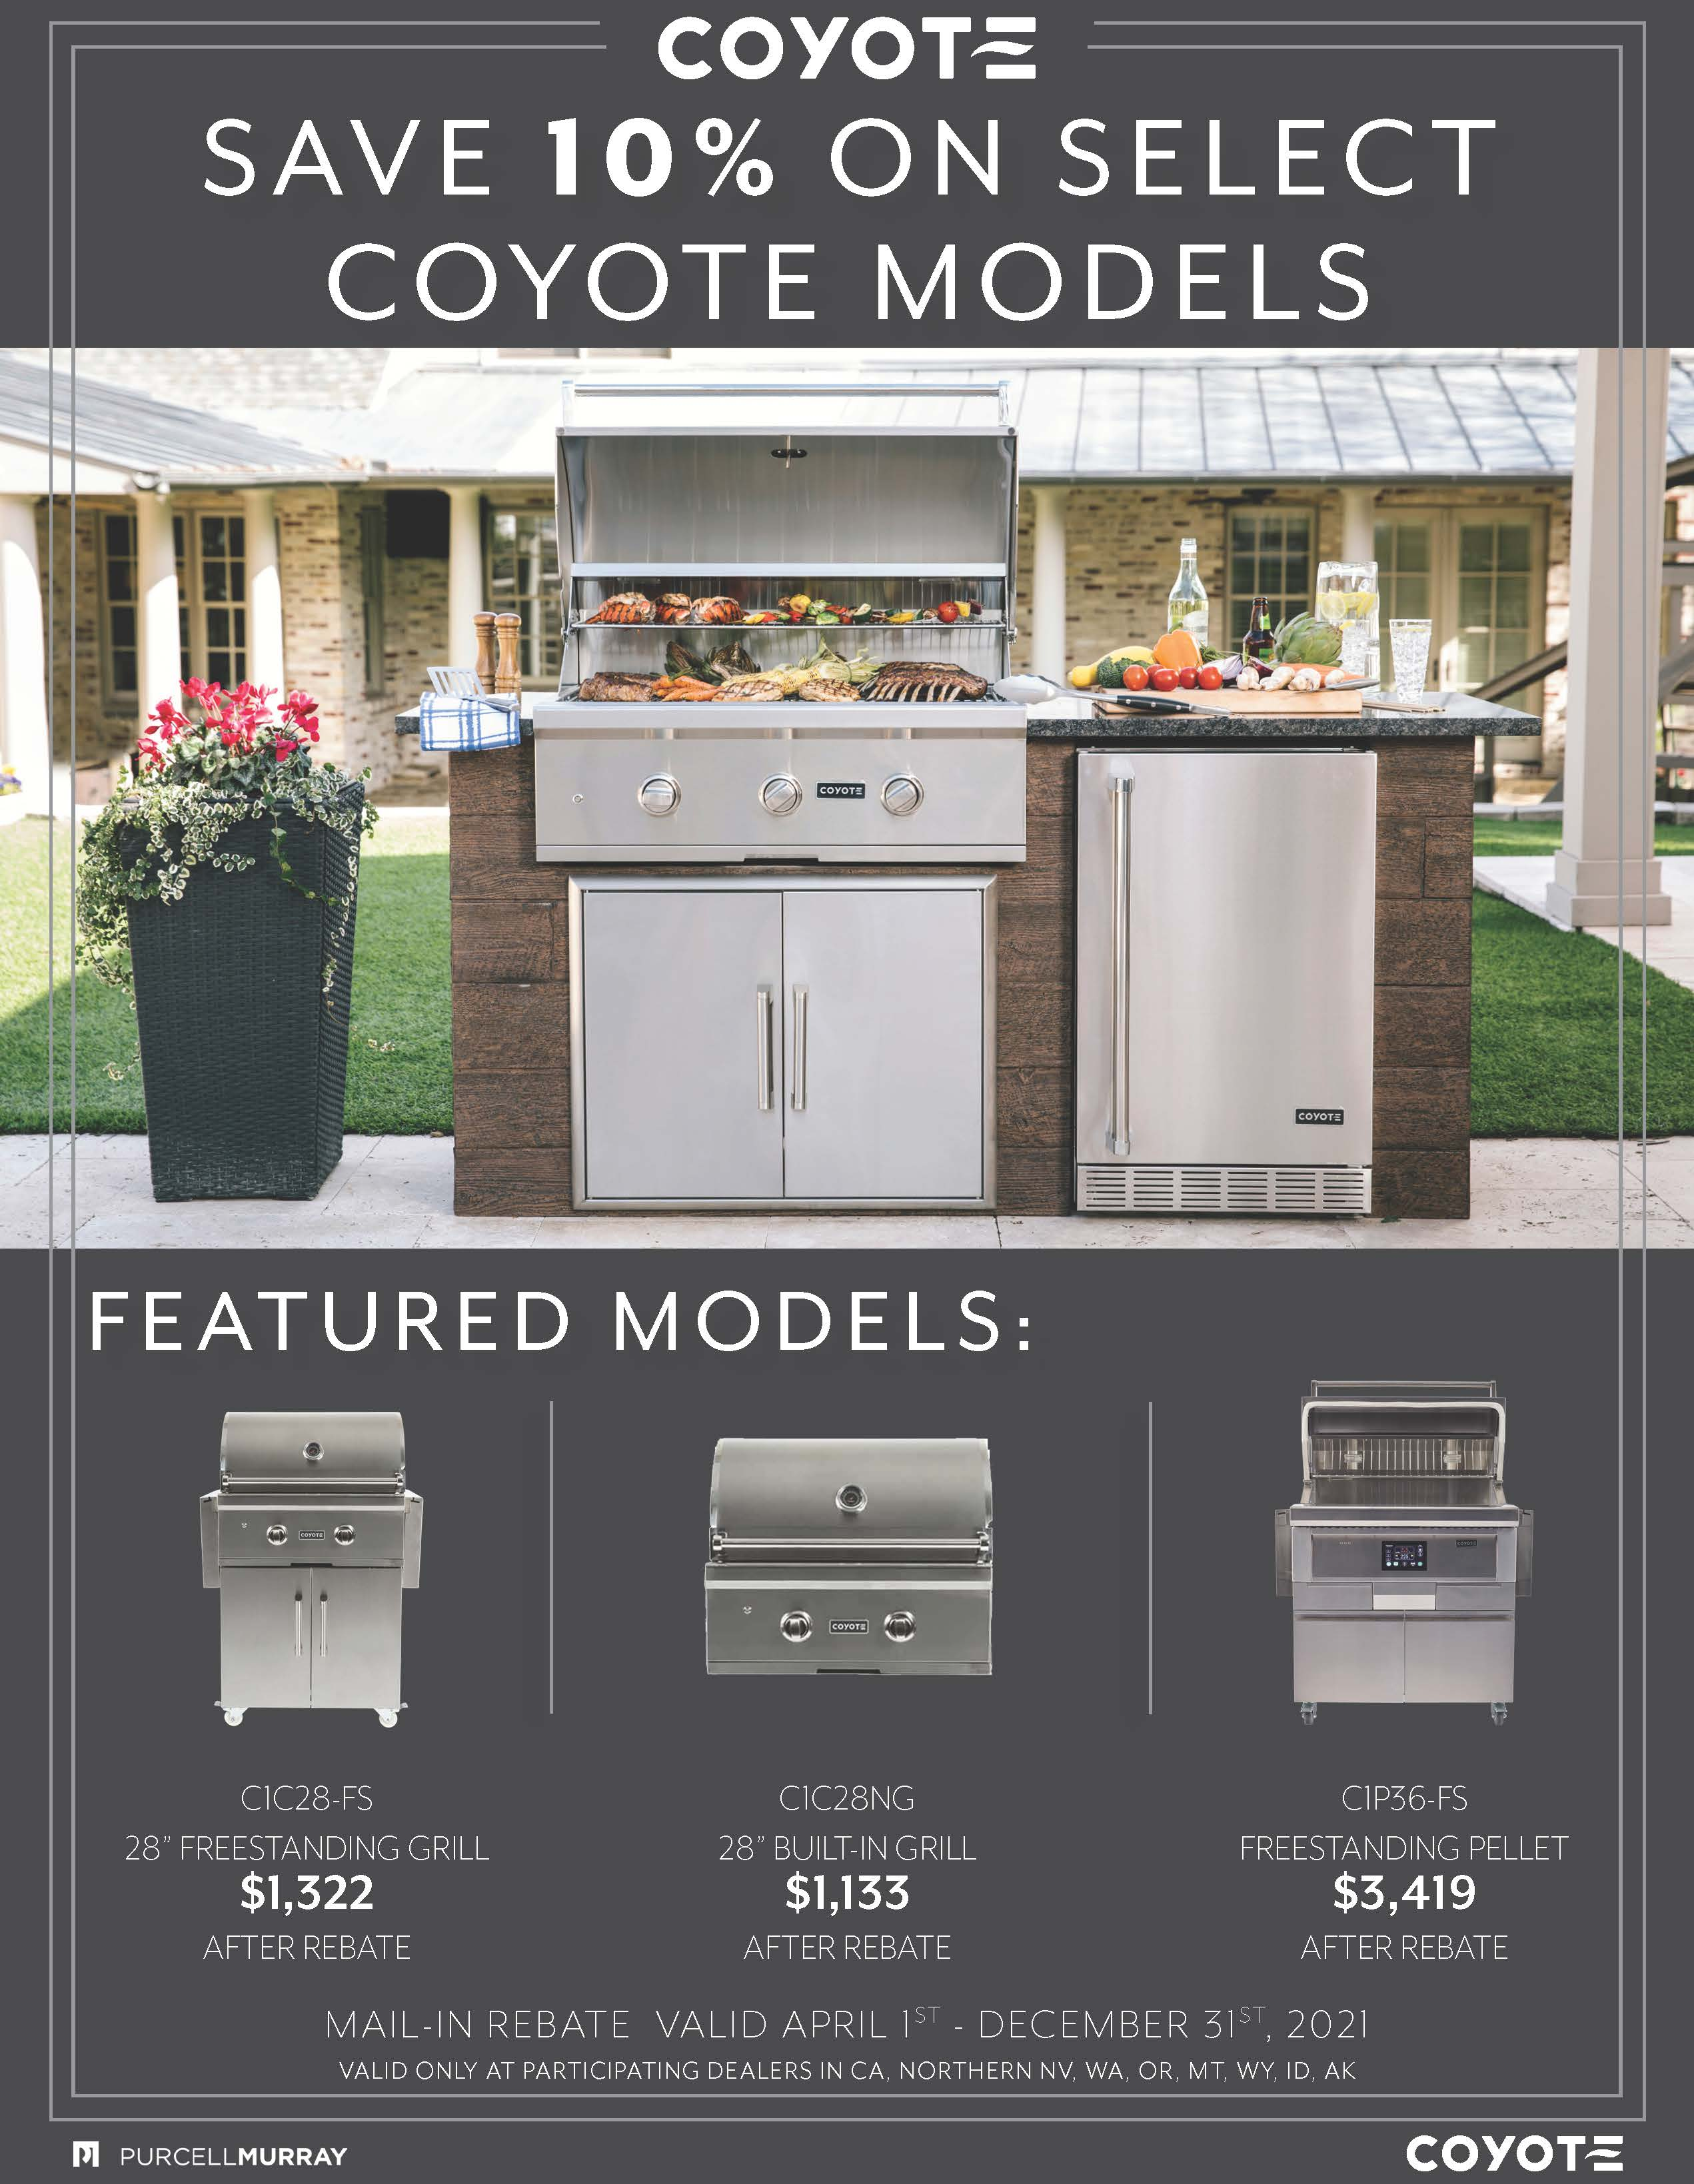 Coyote-save-10percent-select-grills.jpg